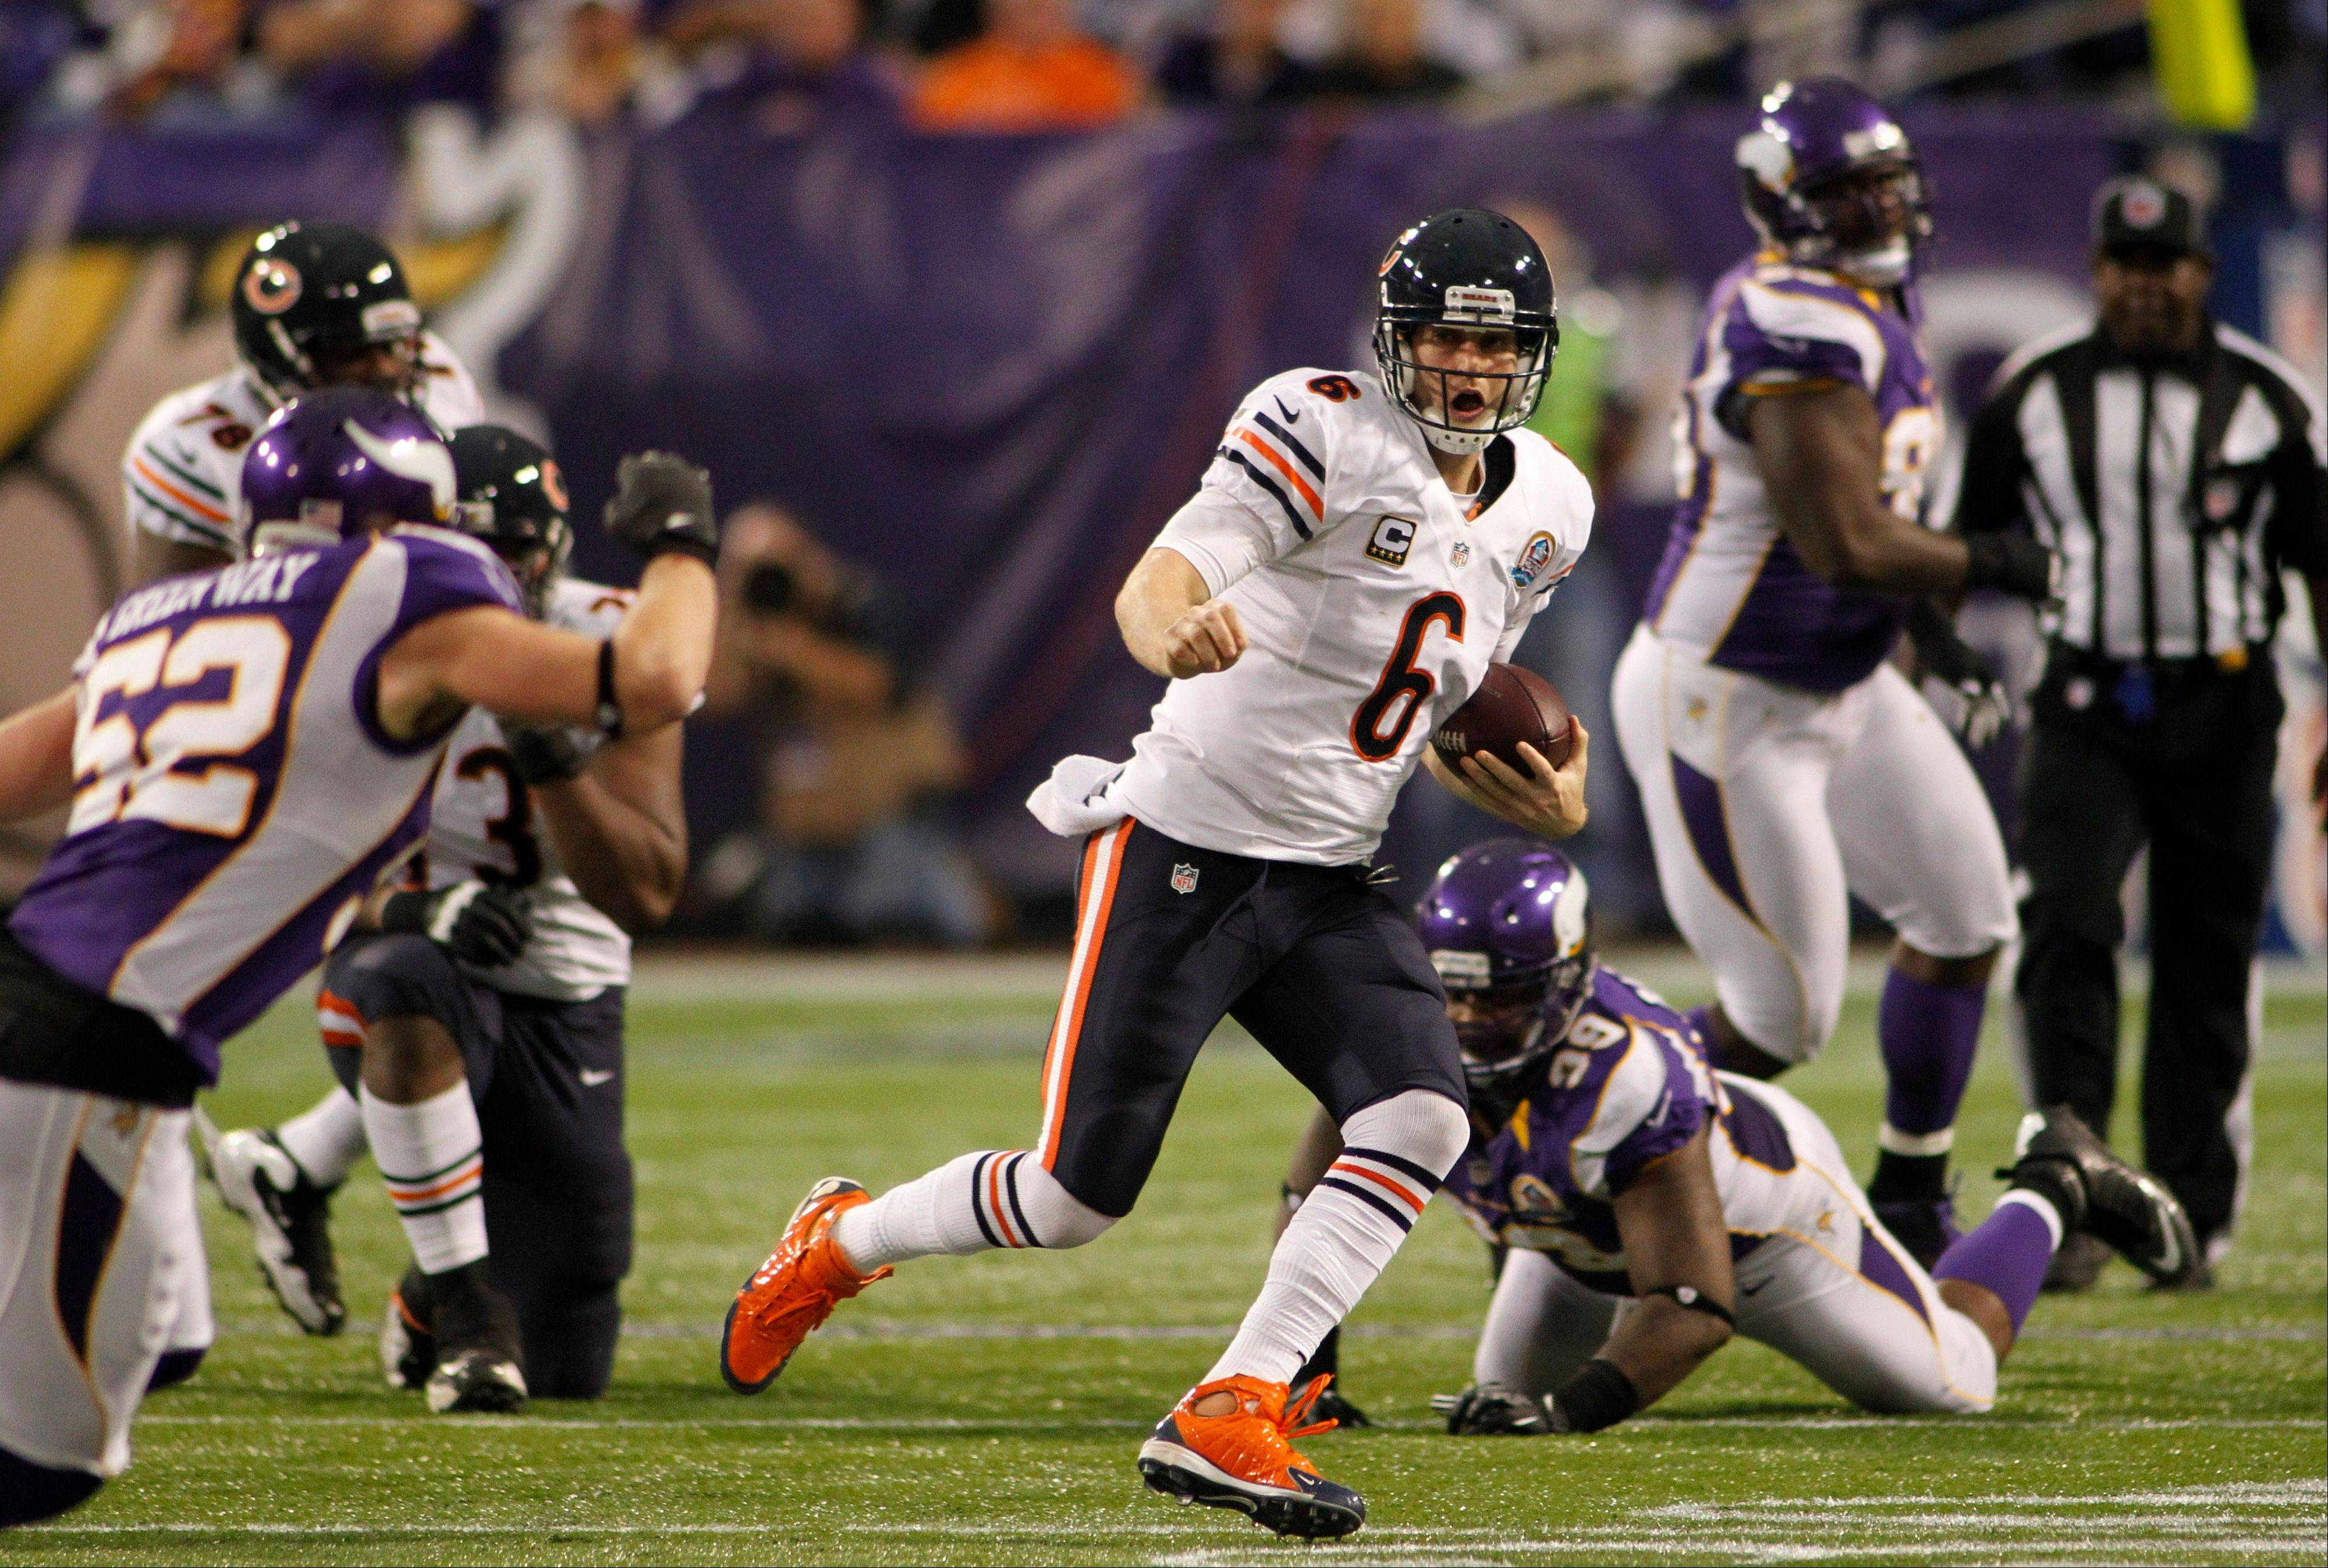 Chicago Bears quarterback Jay Cutler scrambles during the second half of a game against the Minnesota Vikings.